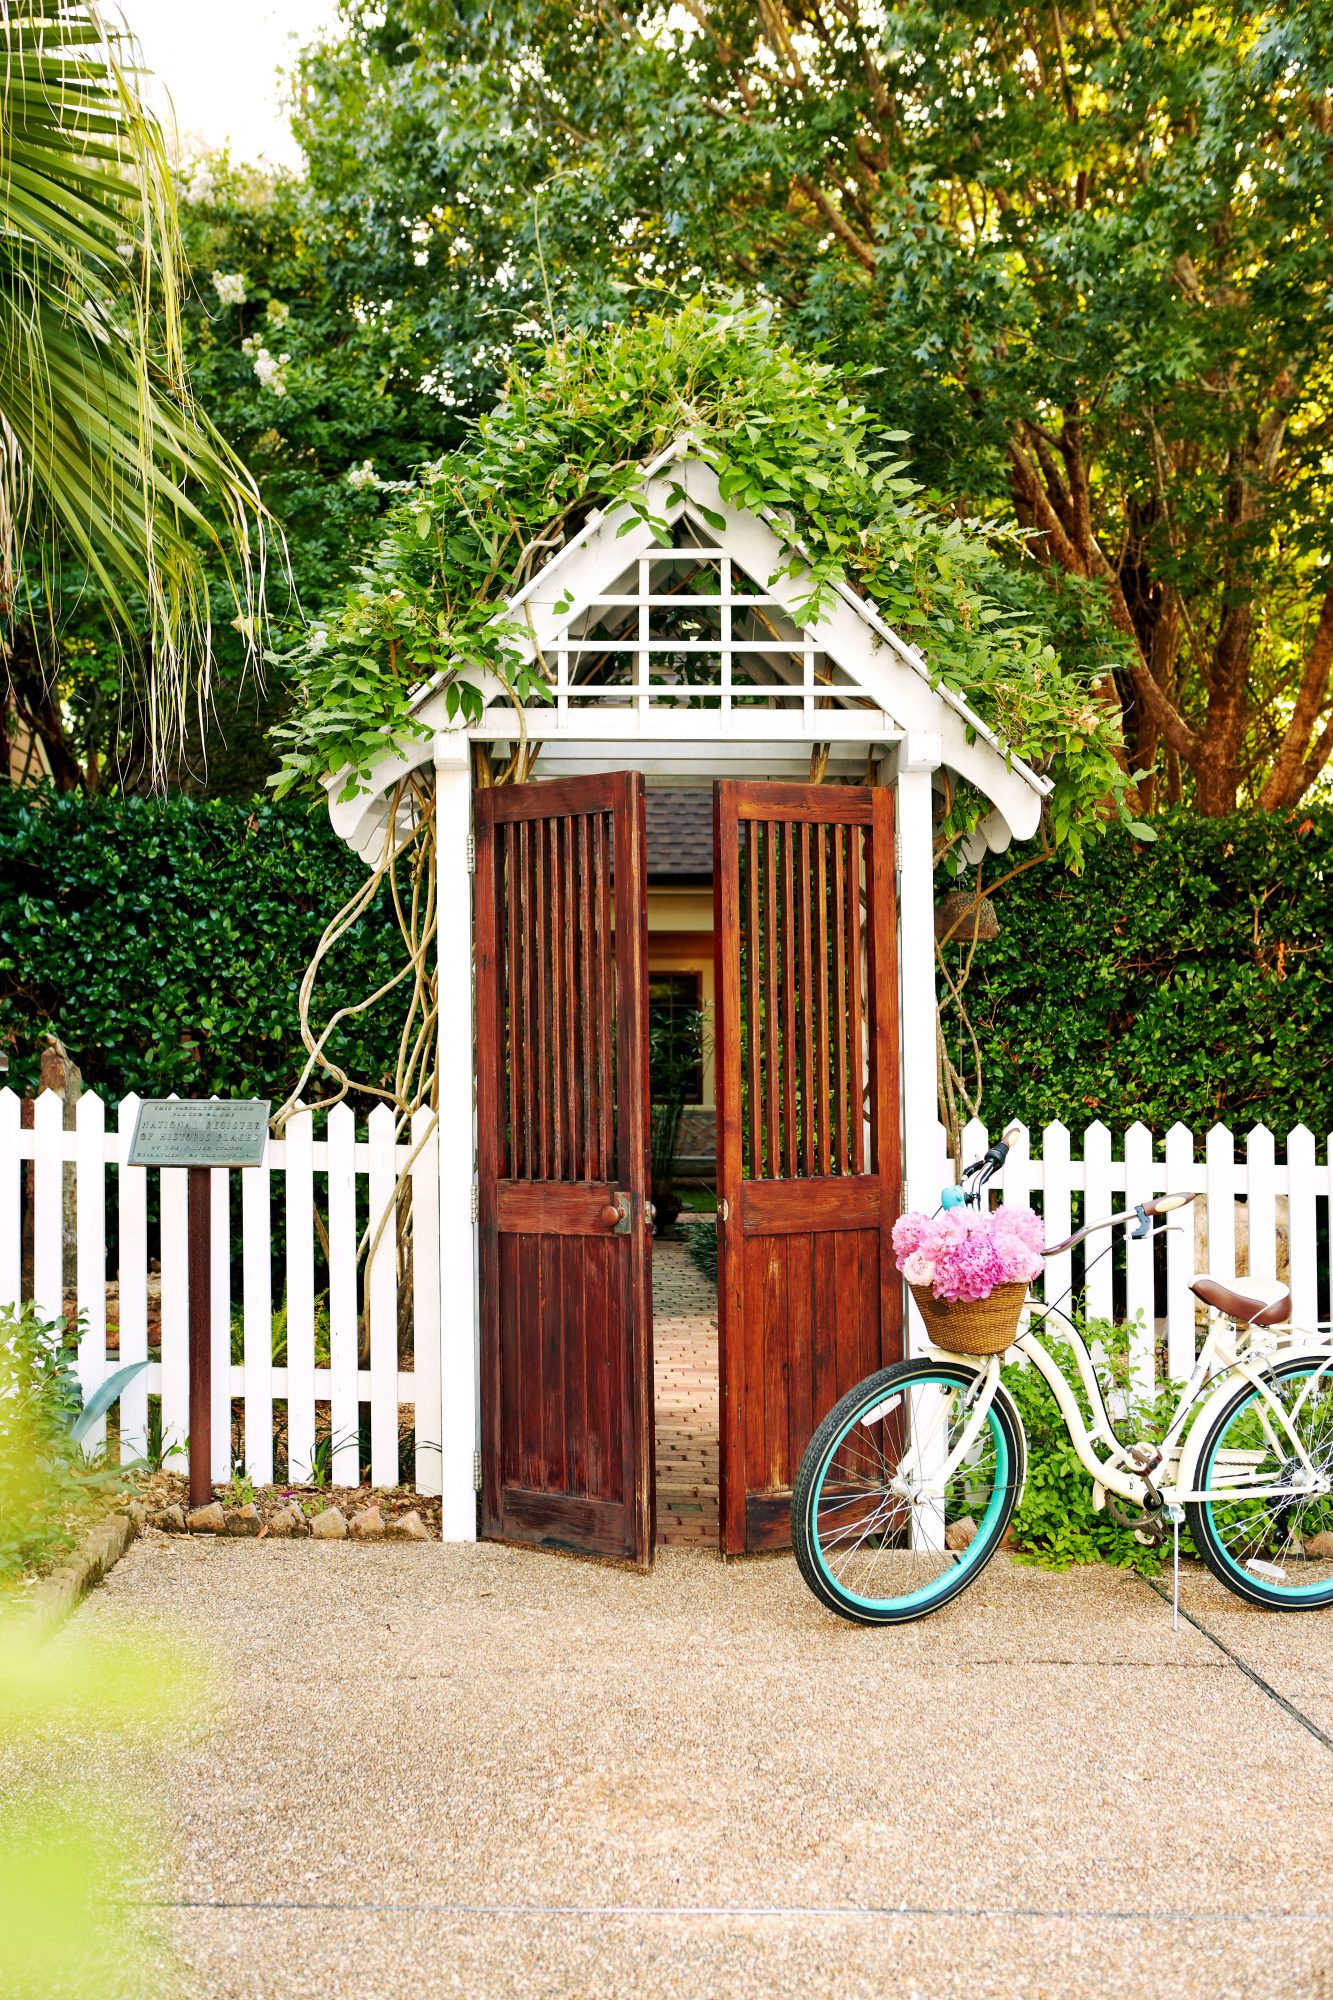 Vine Covered Gate and Picket Fence with Bike